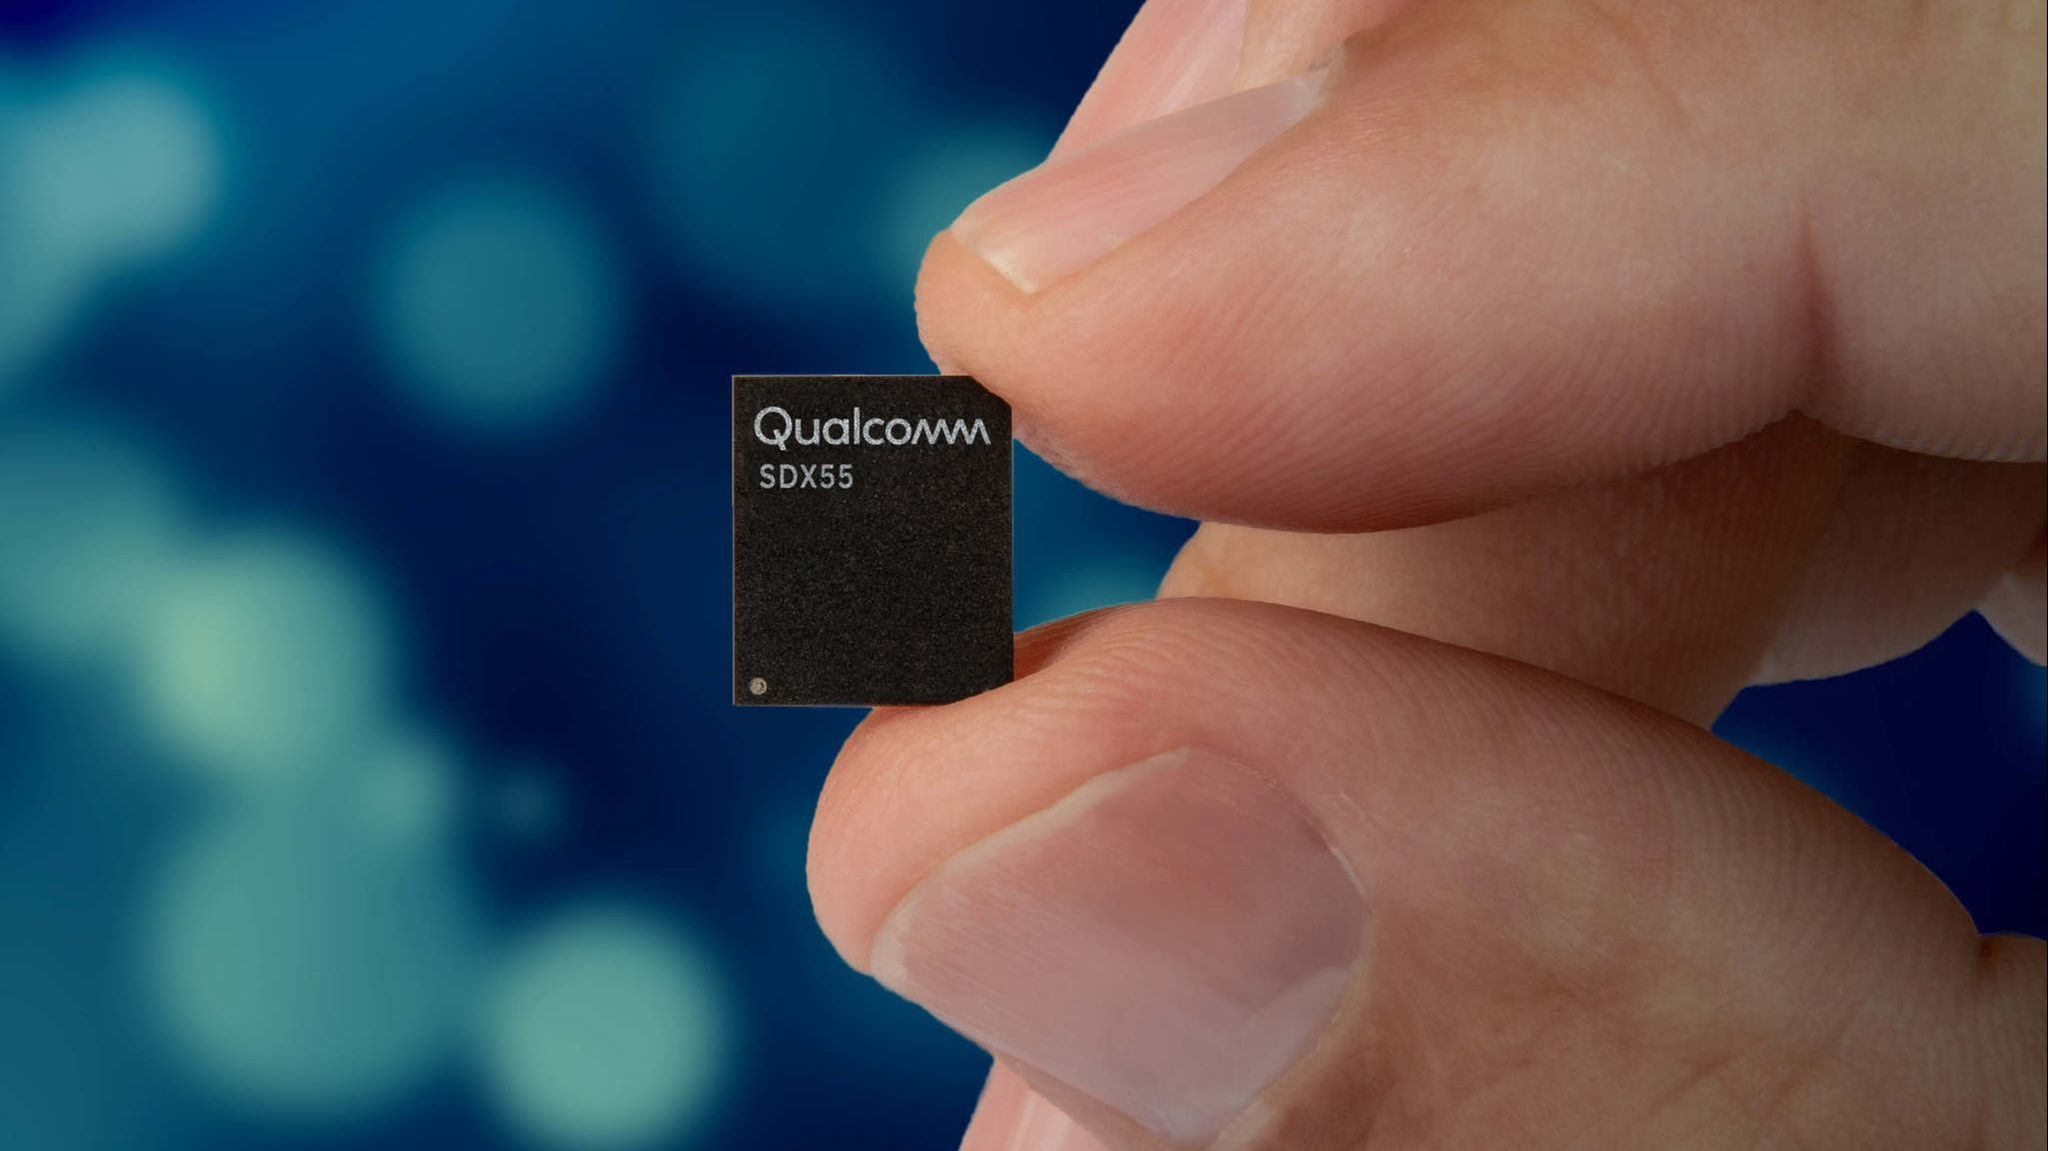 Qualcomm's latest 5G chips to deliver 7 gigabits per second speeds to mobile devices